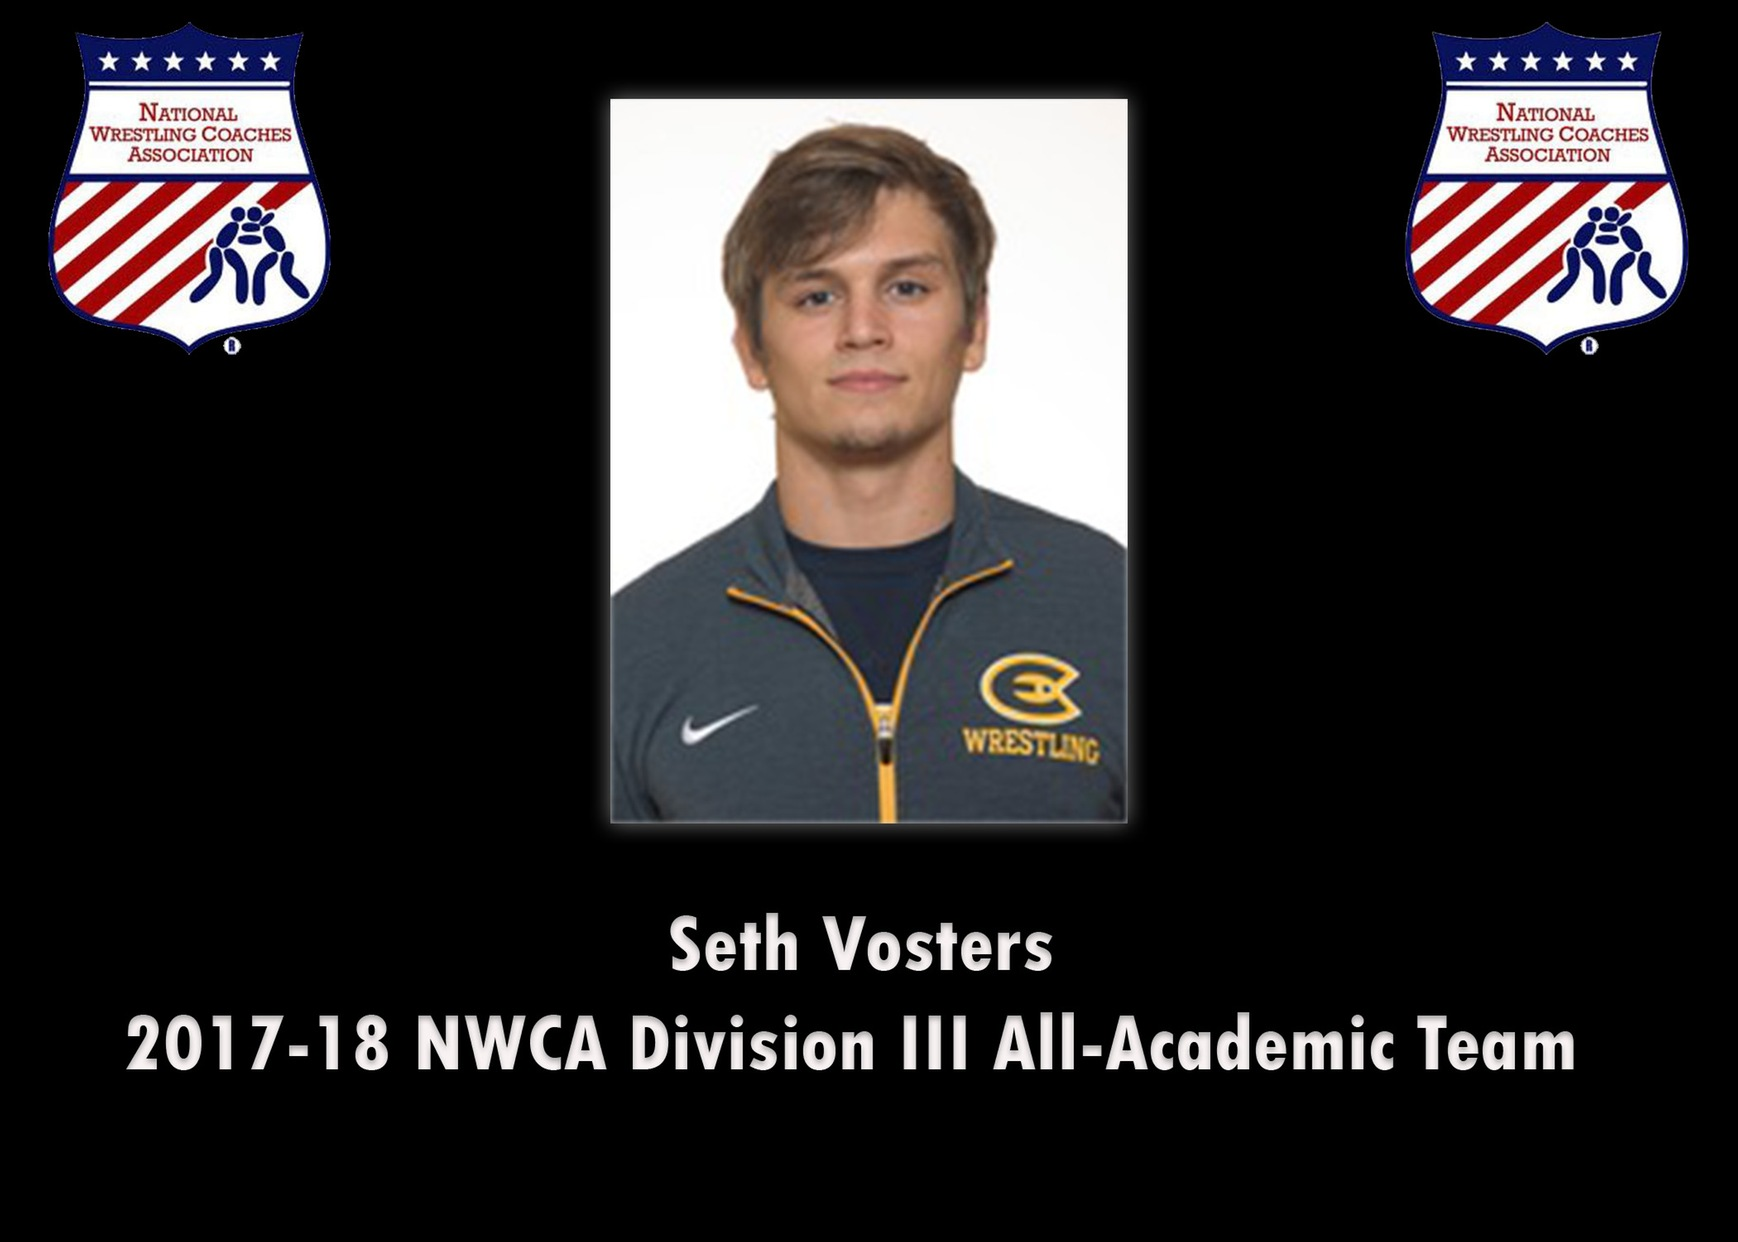 Seth Vosters named to NWCA Division III All-Academic Team